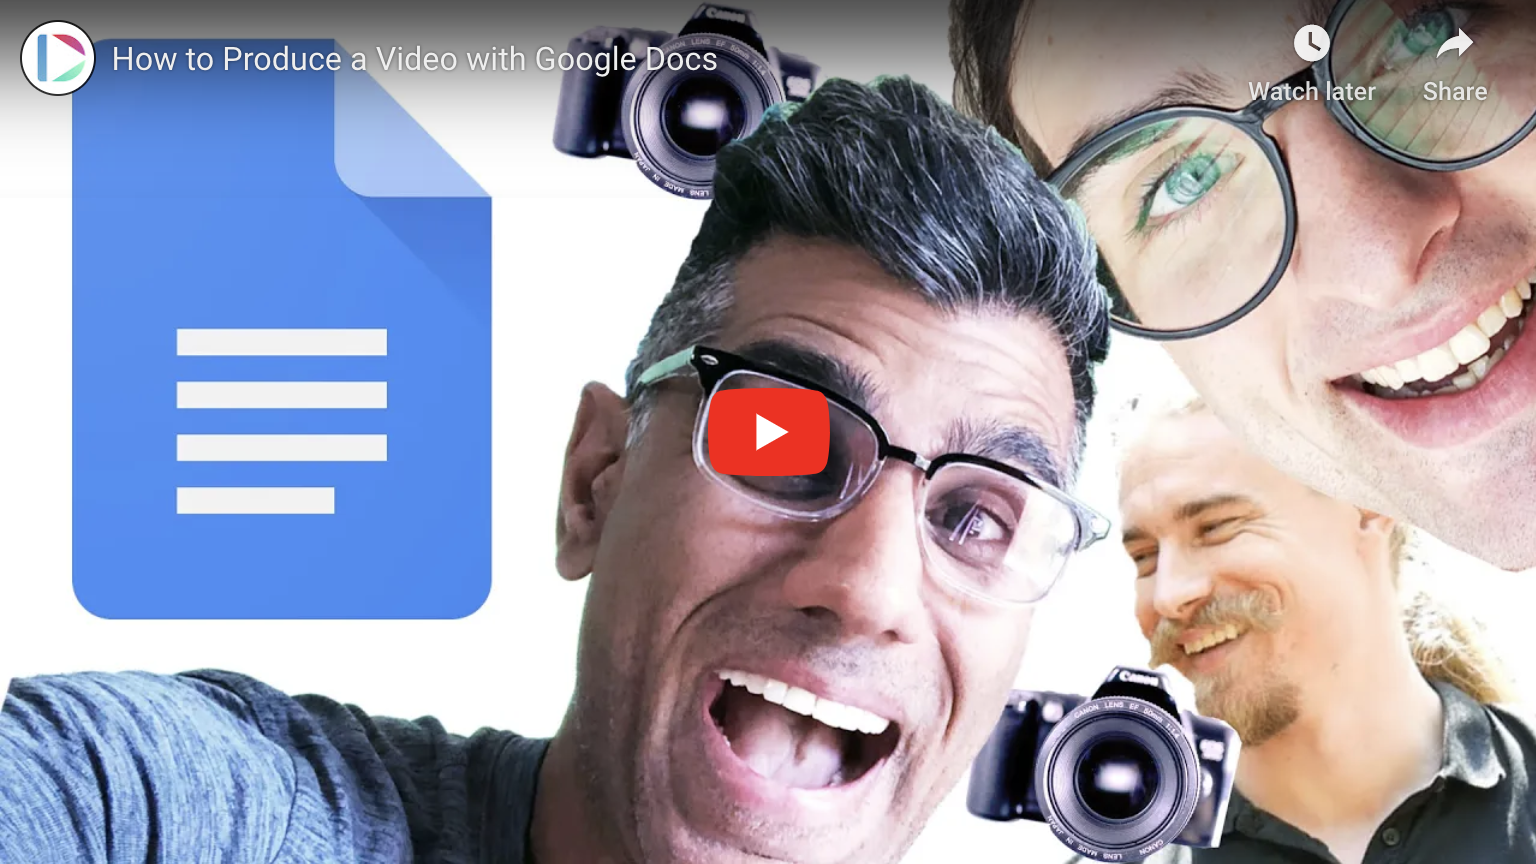 How to Produce a Video with Google Docs